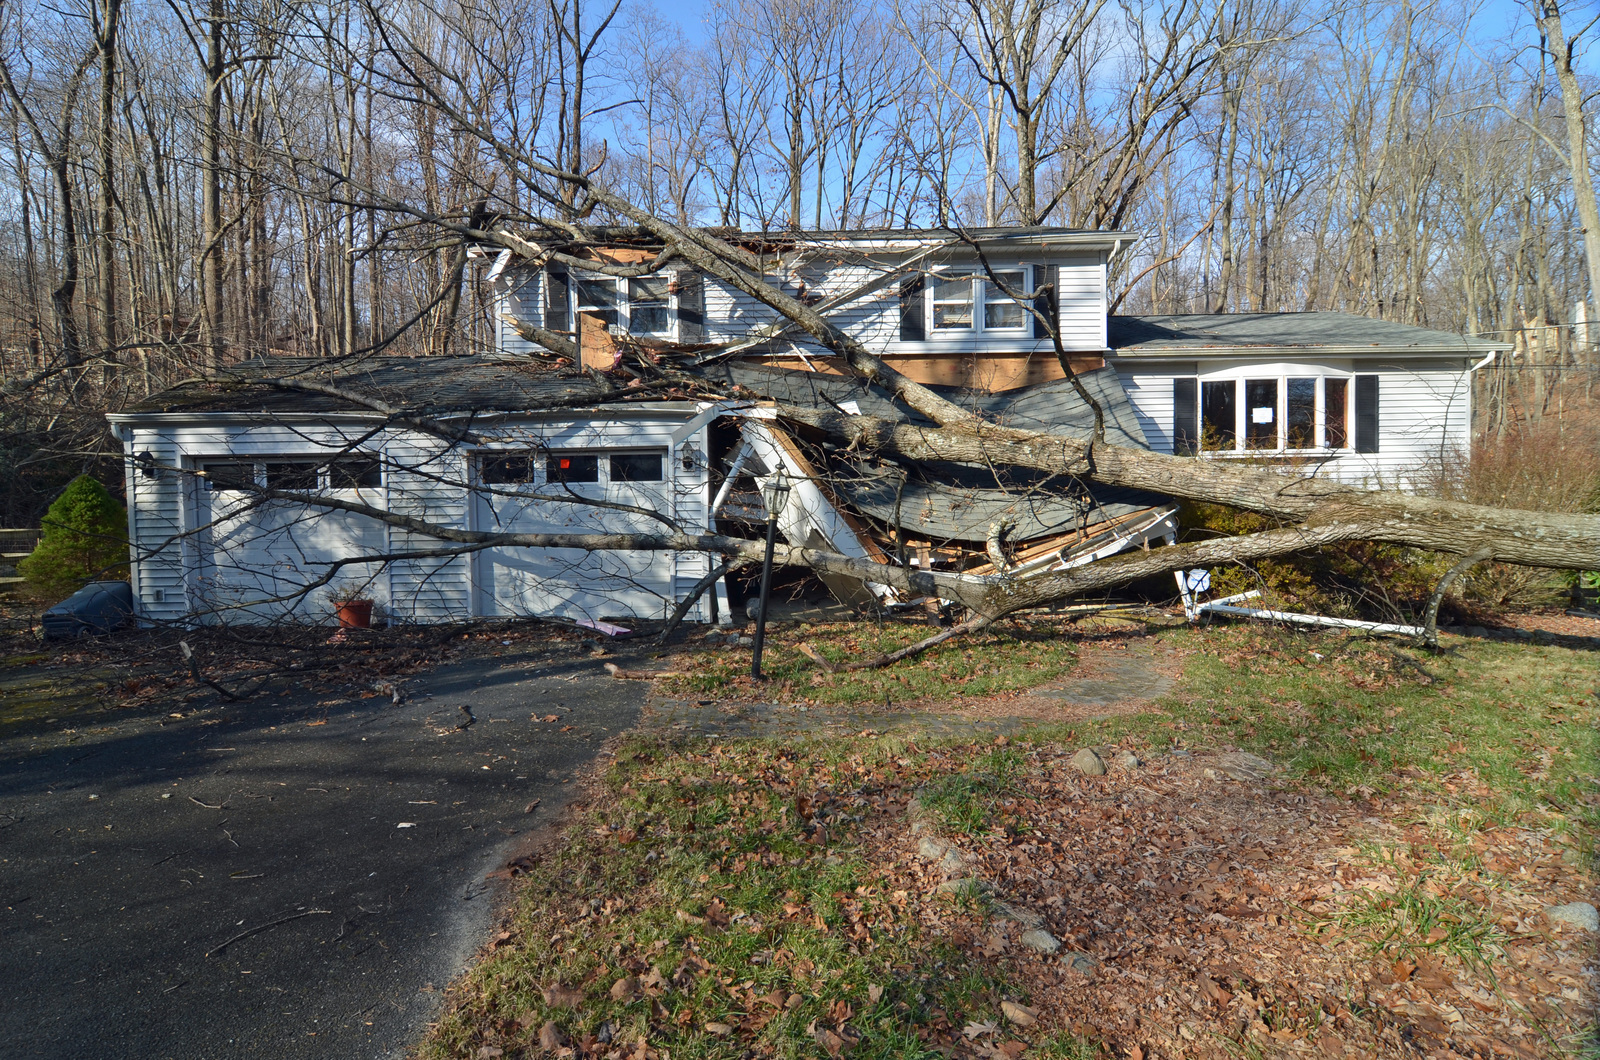 byram-nj-nov-23-2012-high-winds-caused-by-hurricane-sandy-on-oct-29-2012-blew-41123f-1600.jpg